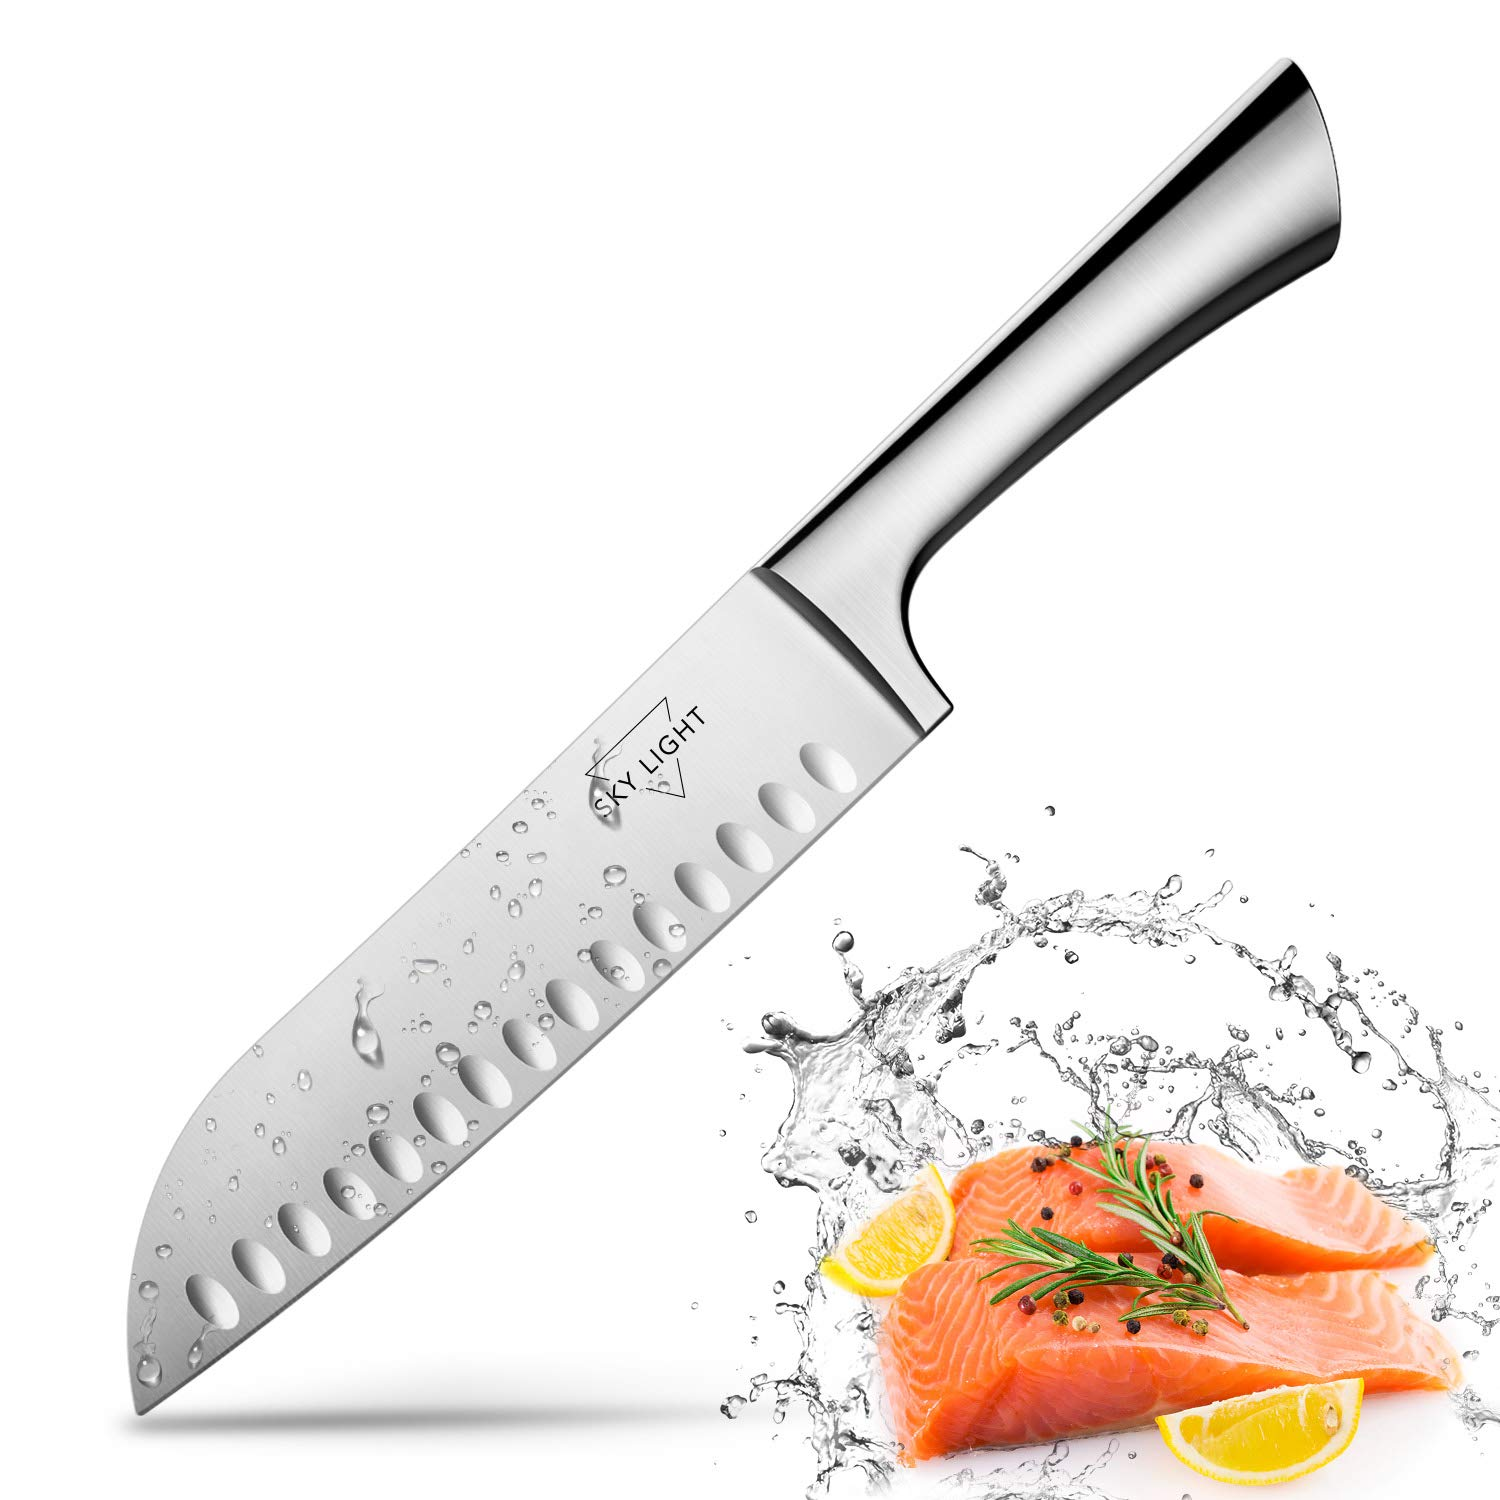 Santoku Knife Kitchen Knife Japanese Sushi Knife, 7 Inch Hollow Edge Blade with German HC Stainless Steel